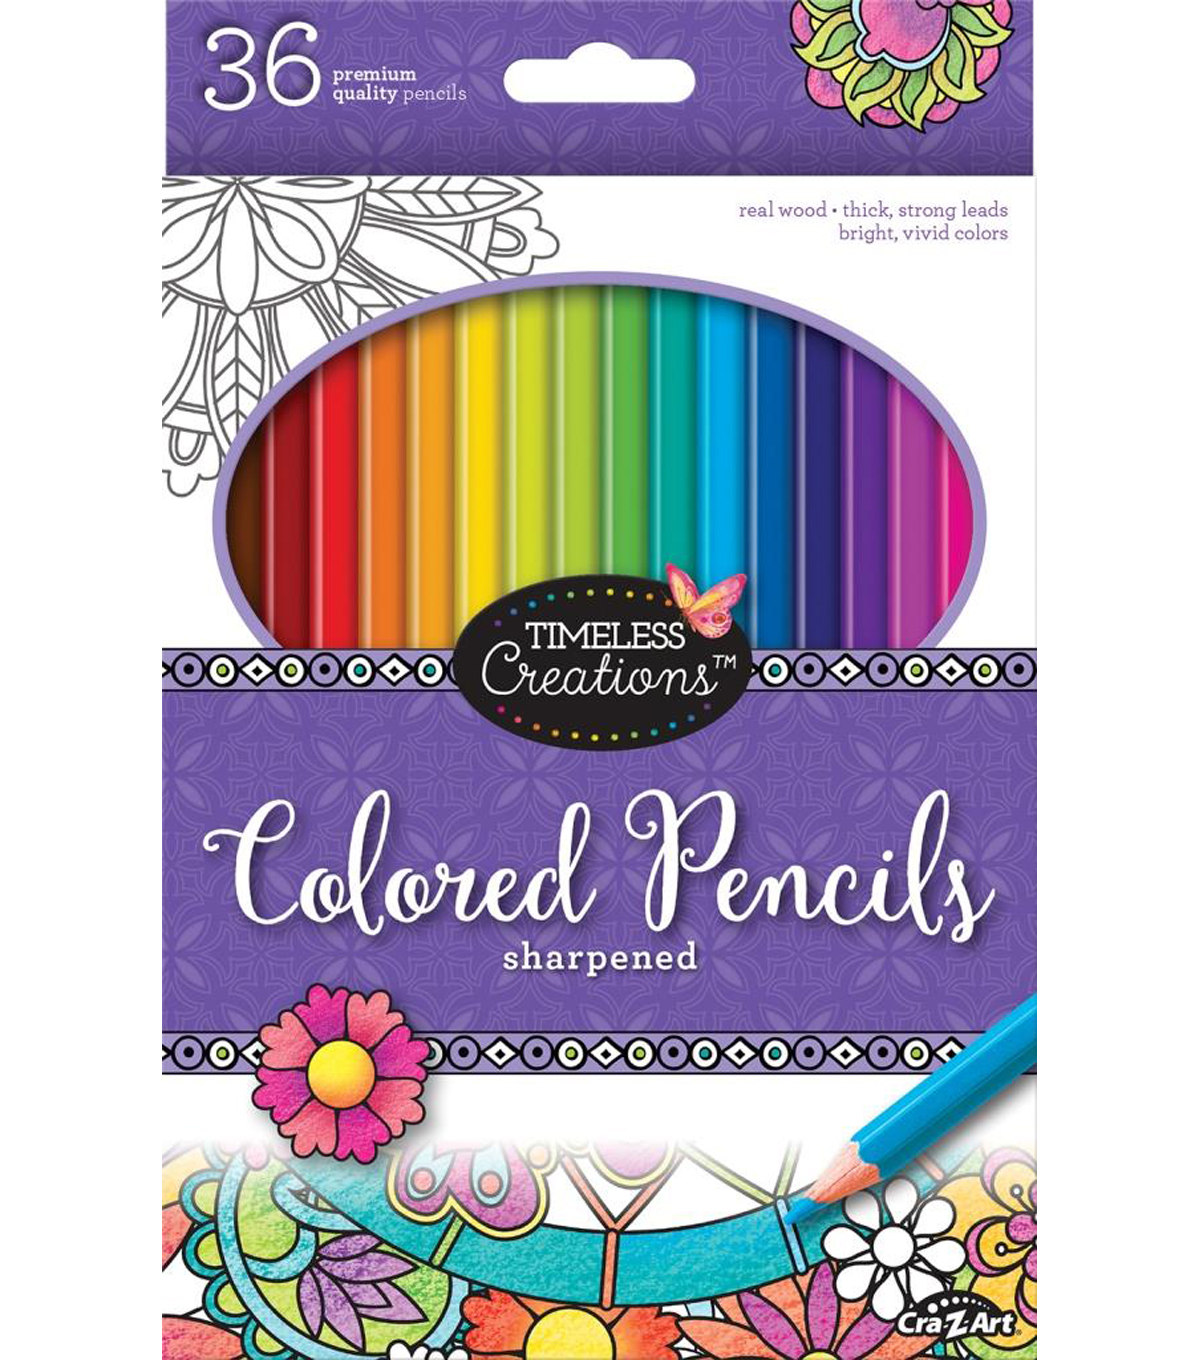 Timeless Creations 36ct Colored Pencils